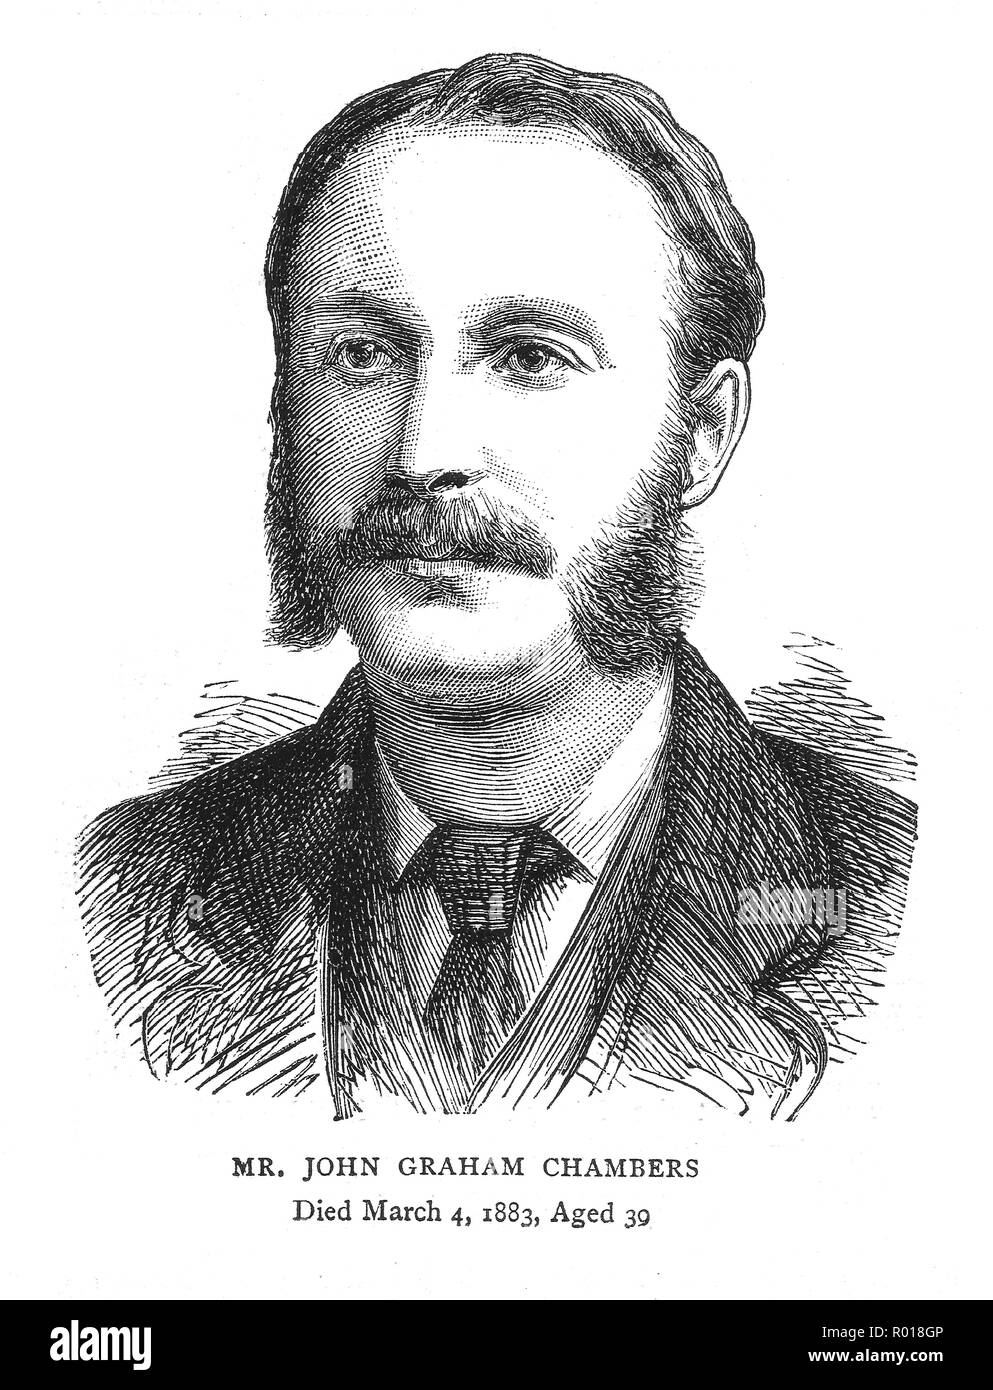 John Graham Chambers (1843-1883) was born in Llanelli, Camarthenshire, Wales, and compiled the Queensbury / Queensberry rules for boxing in 1867. - Stock Image